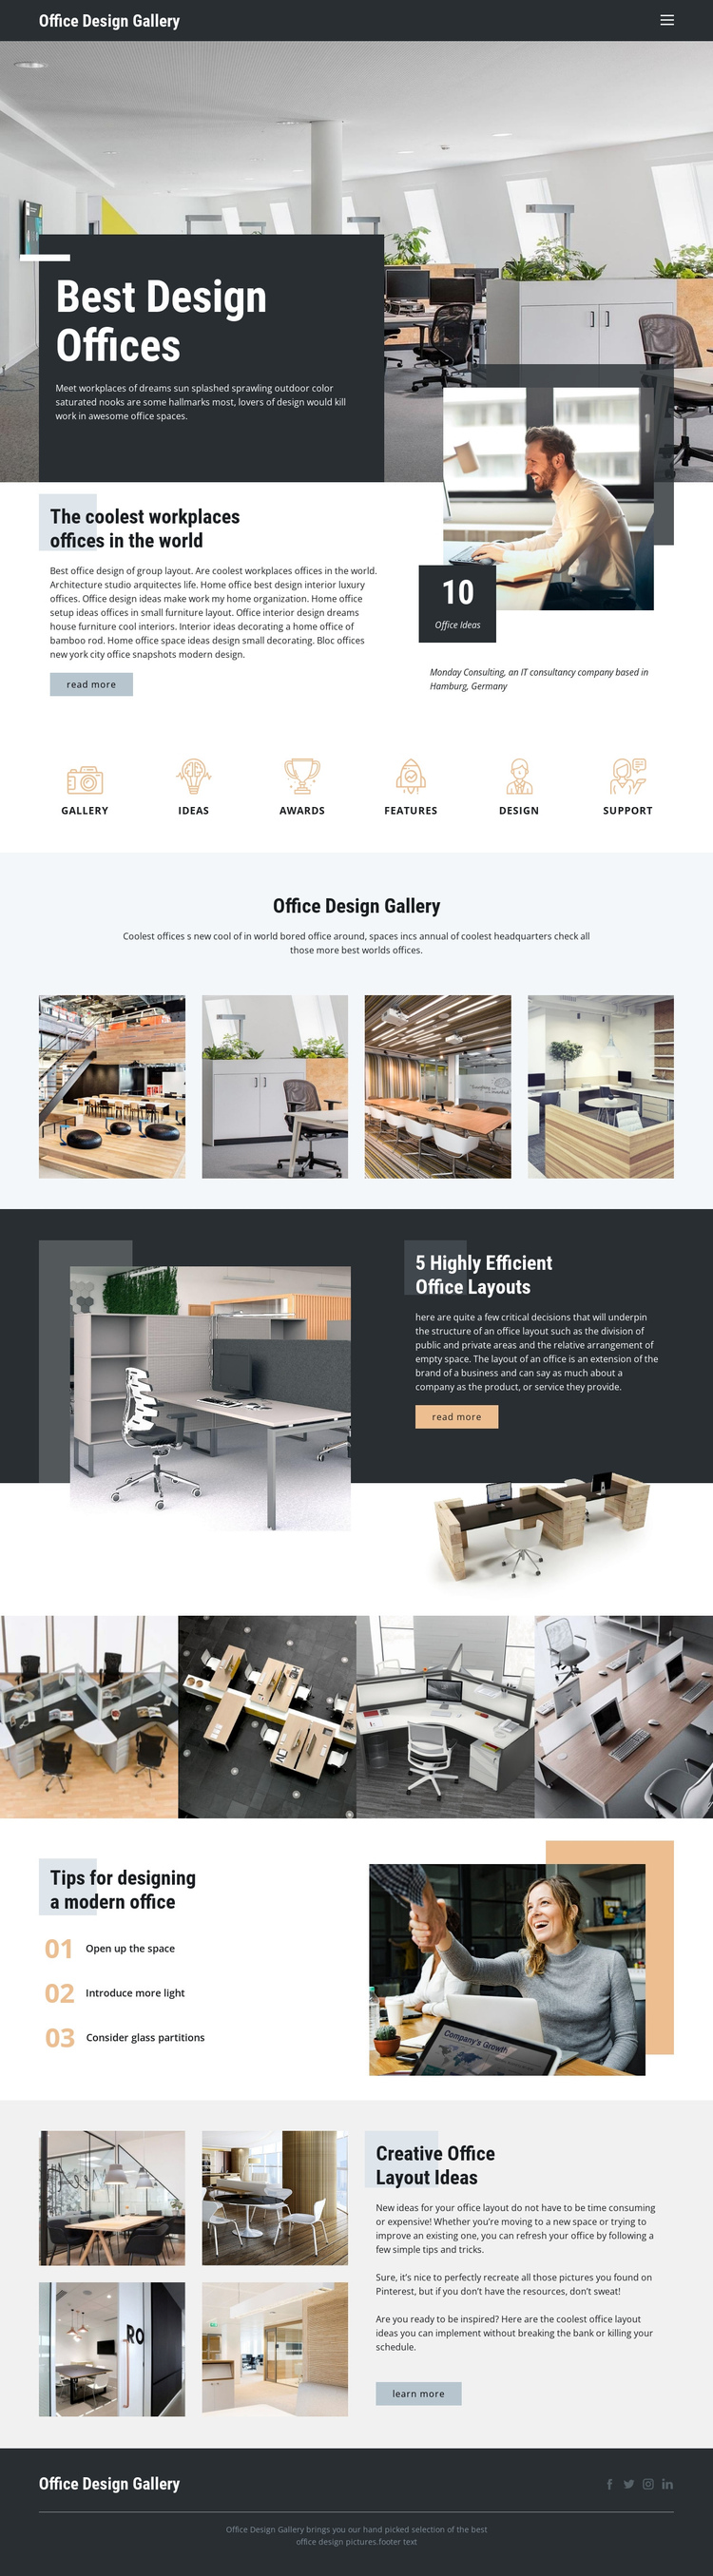 Best Design Offices One Page Template